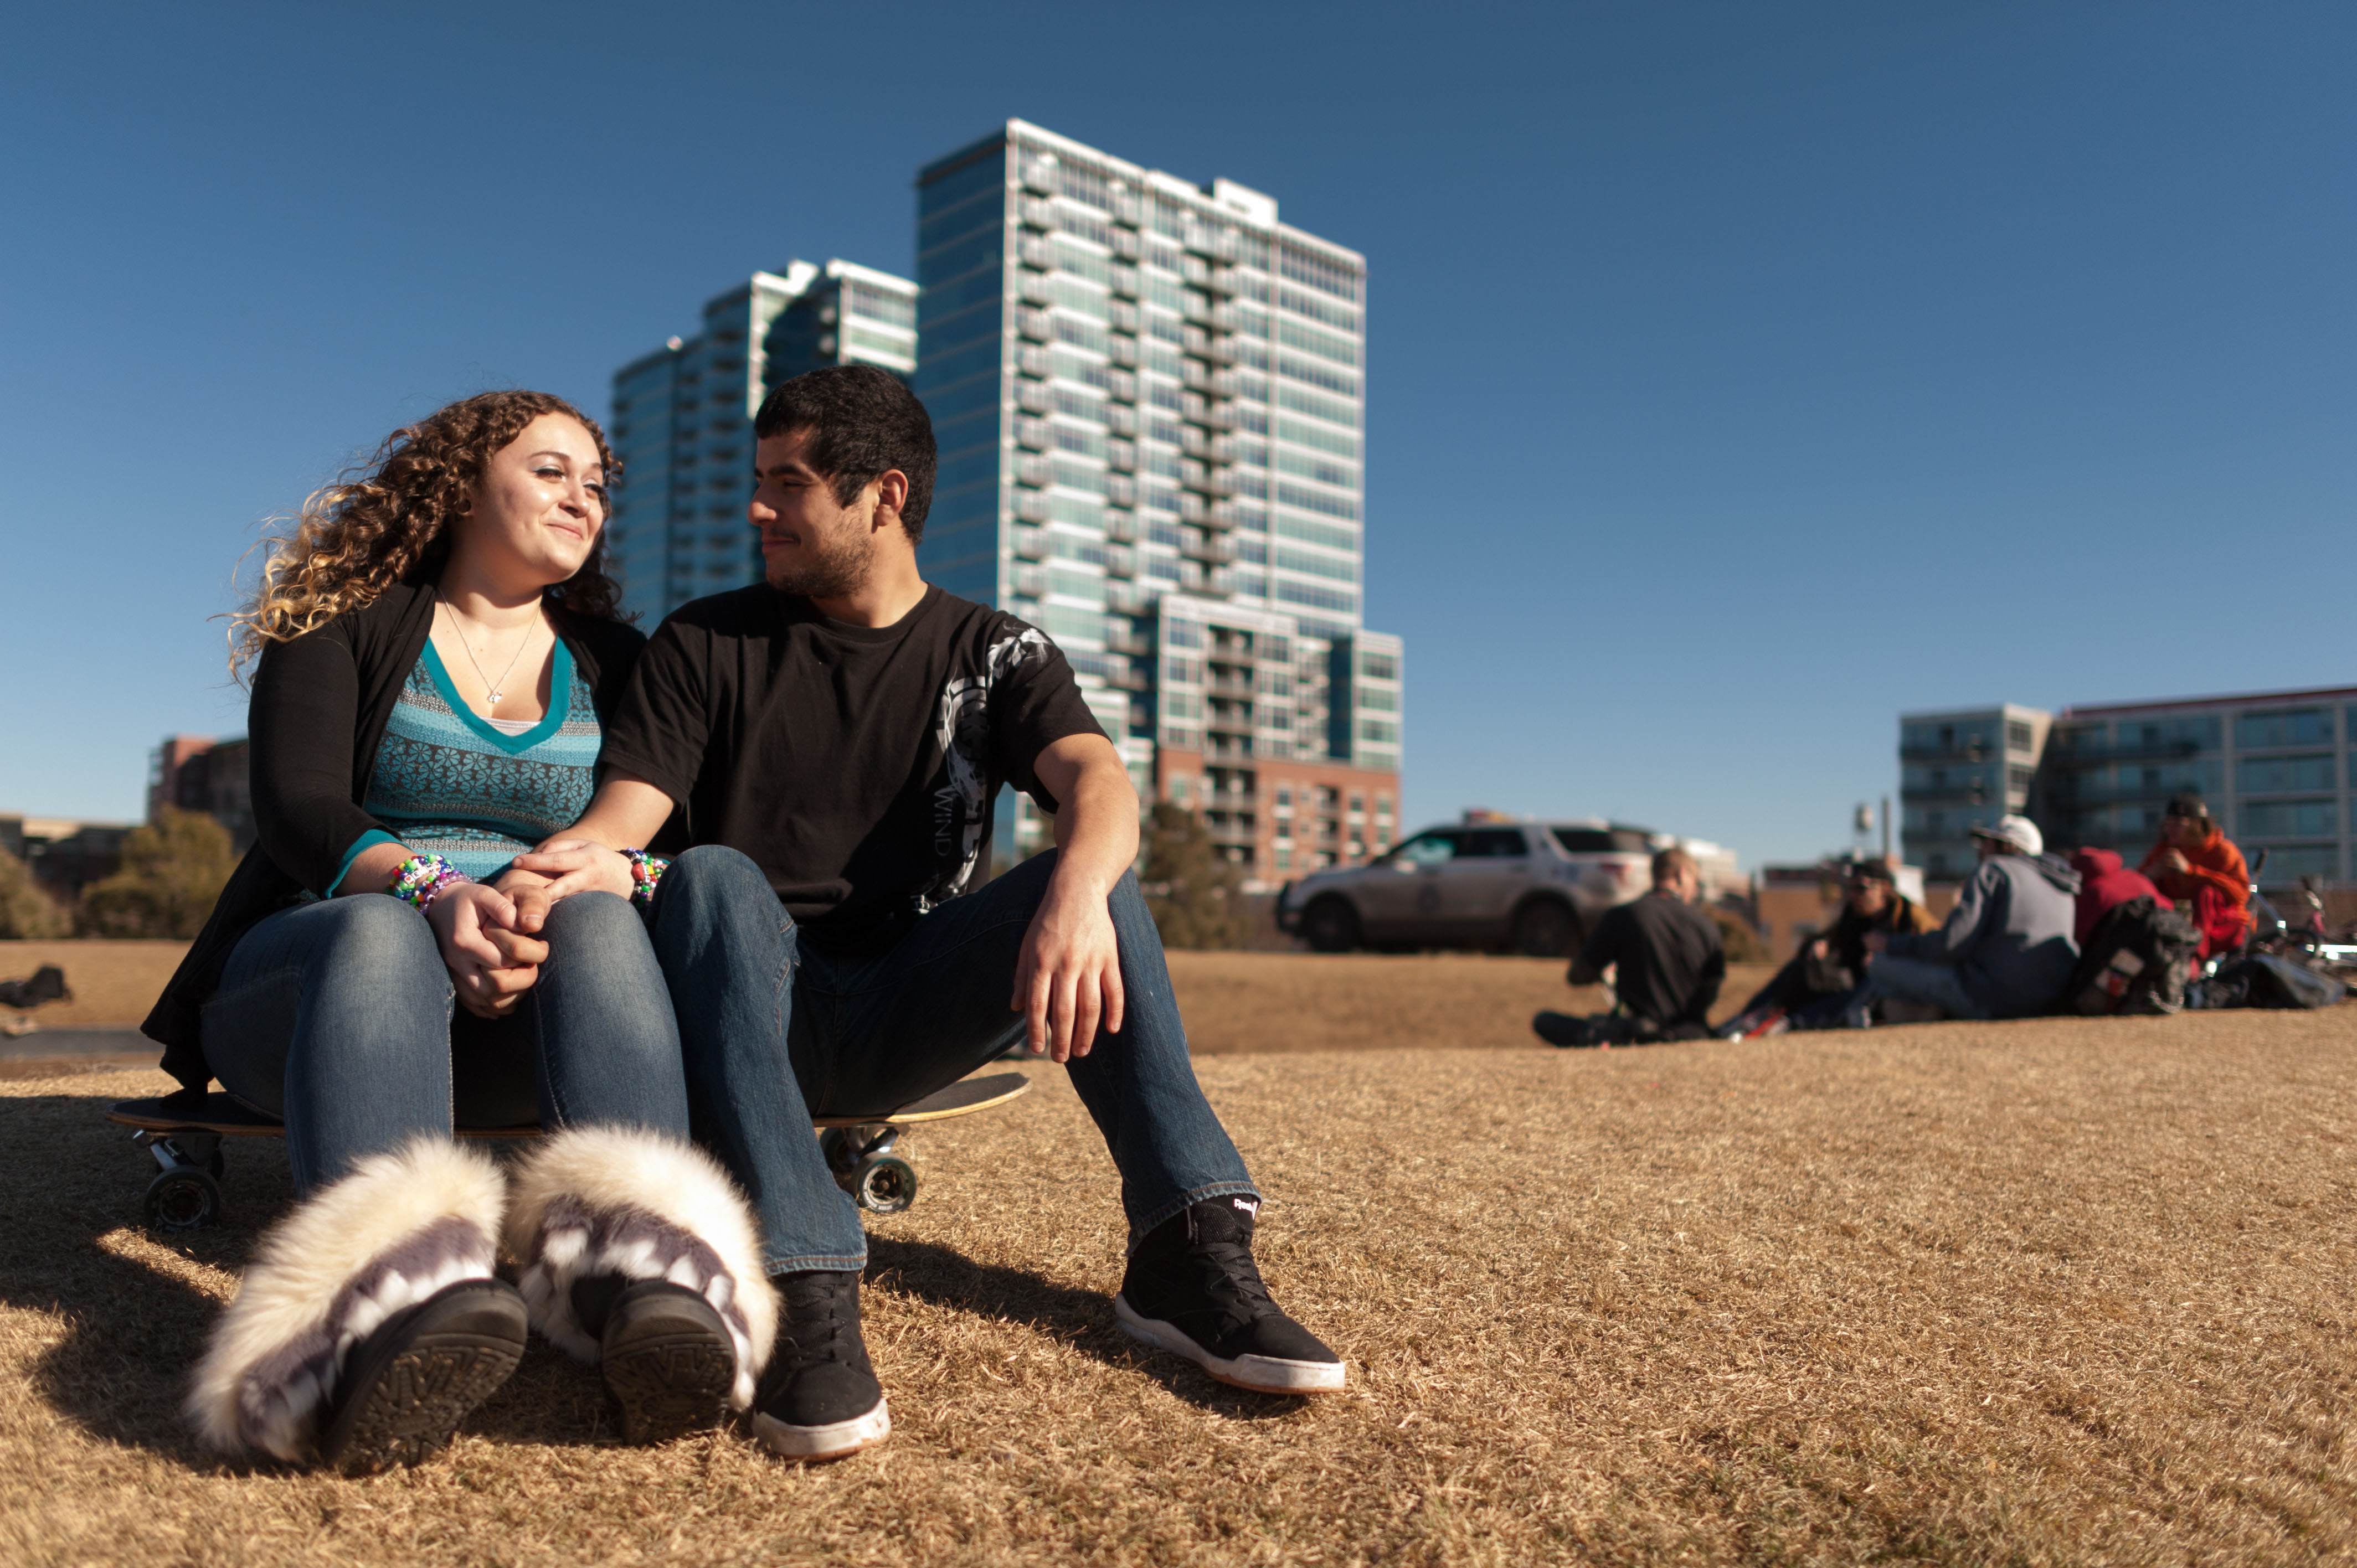 Photo: Destiny Carney and Adrian Pasillas in Commons Park